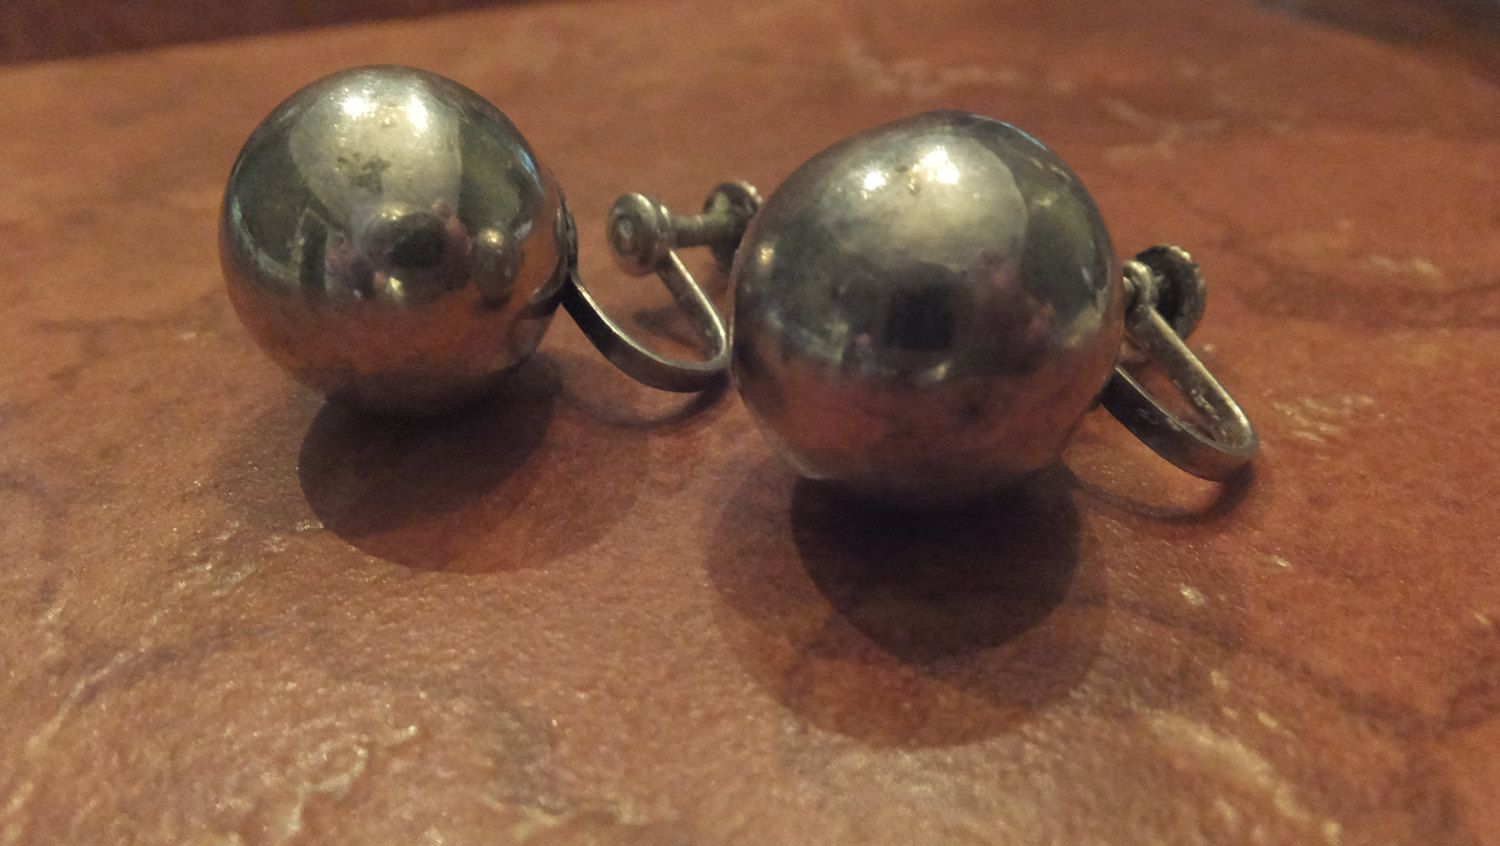 Vintage Sterling Silver Handmade Ball Earrings Marked Mexico Silver Jewelry by Stellavintagejewelry on Etsy